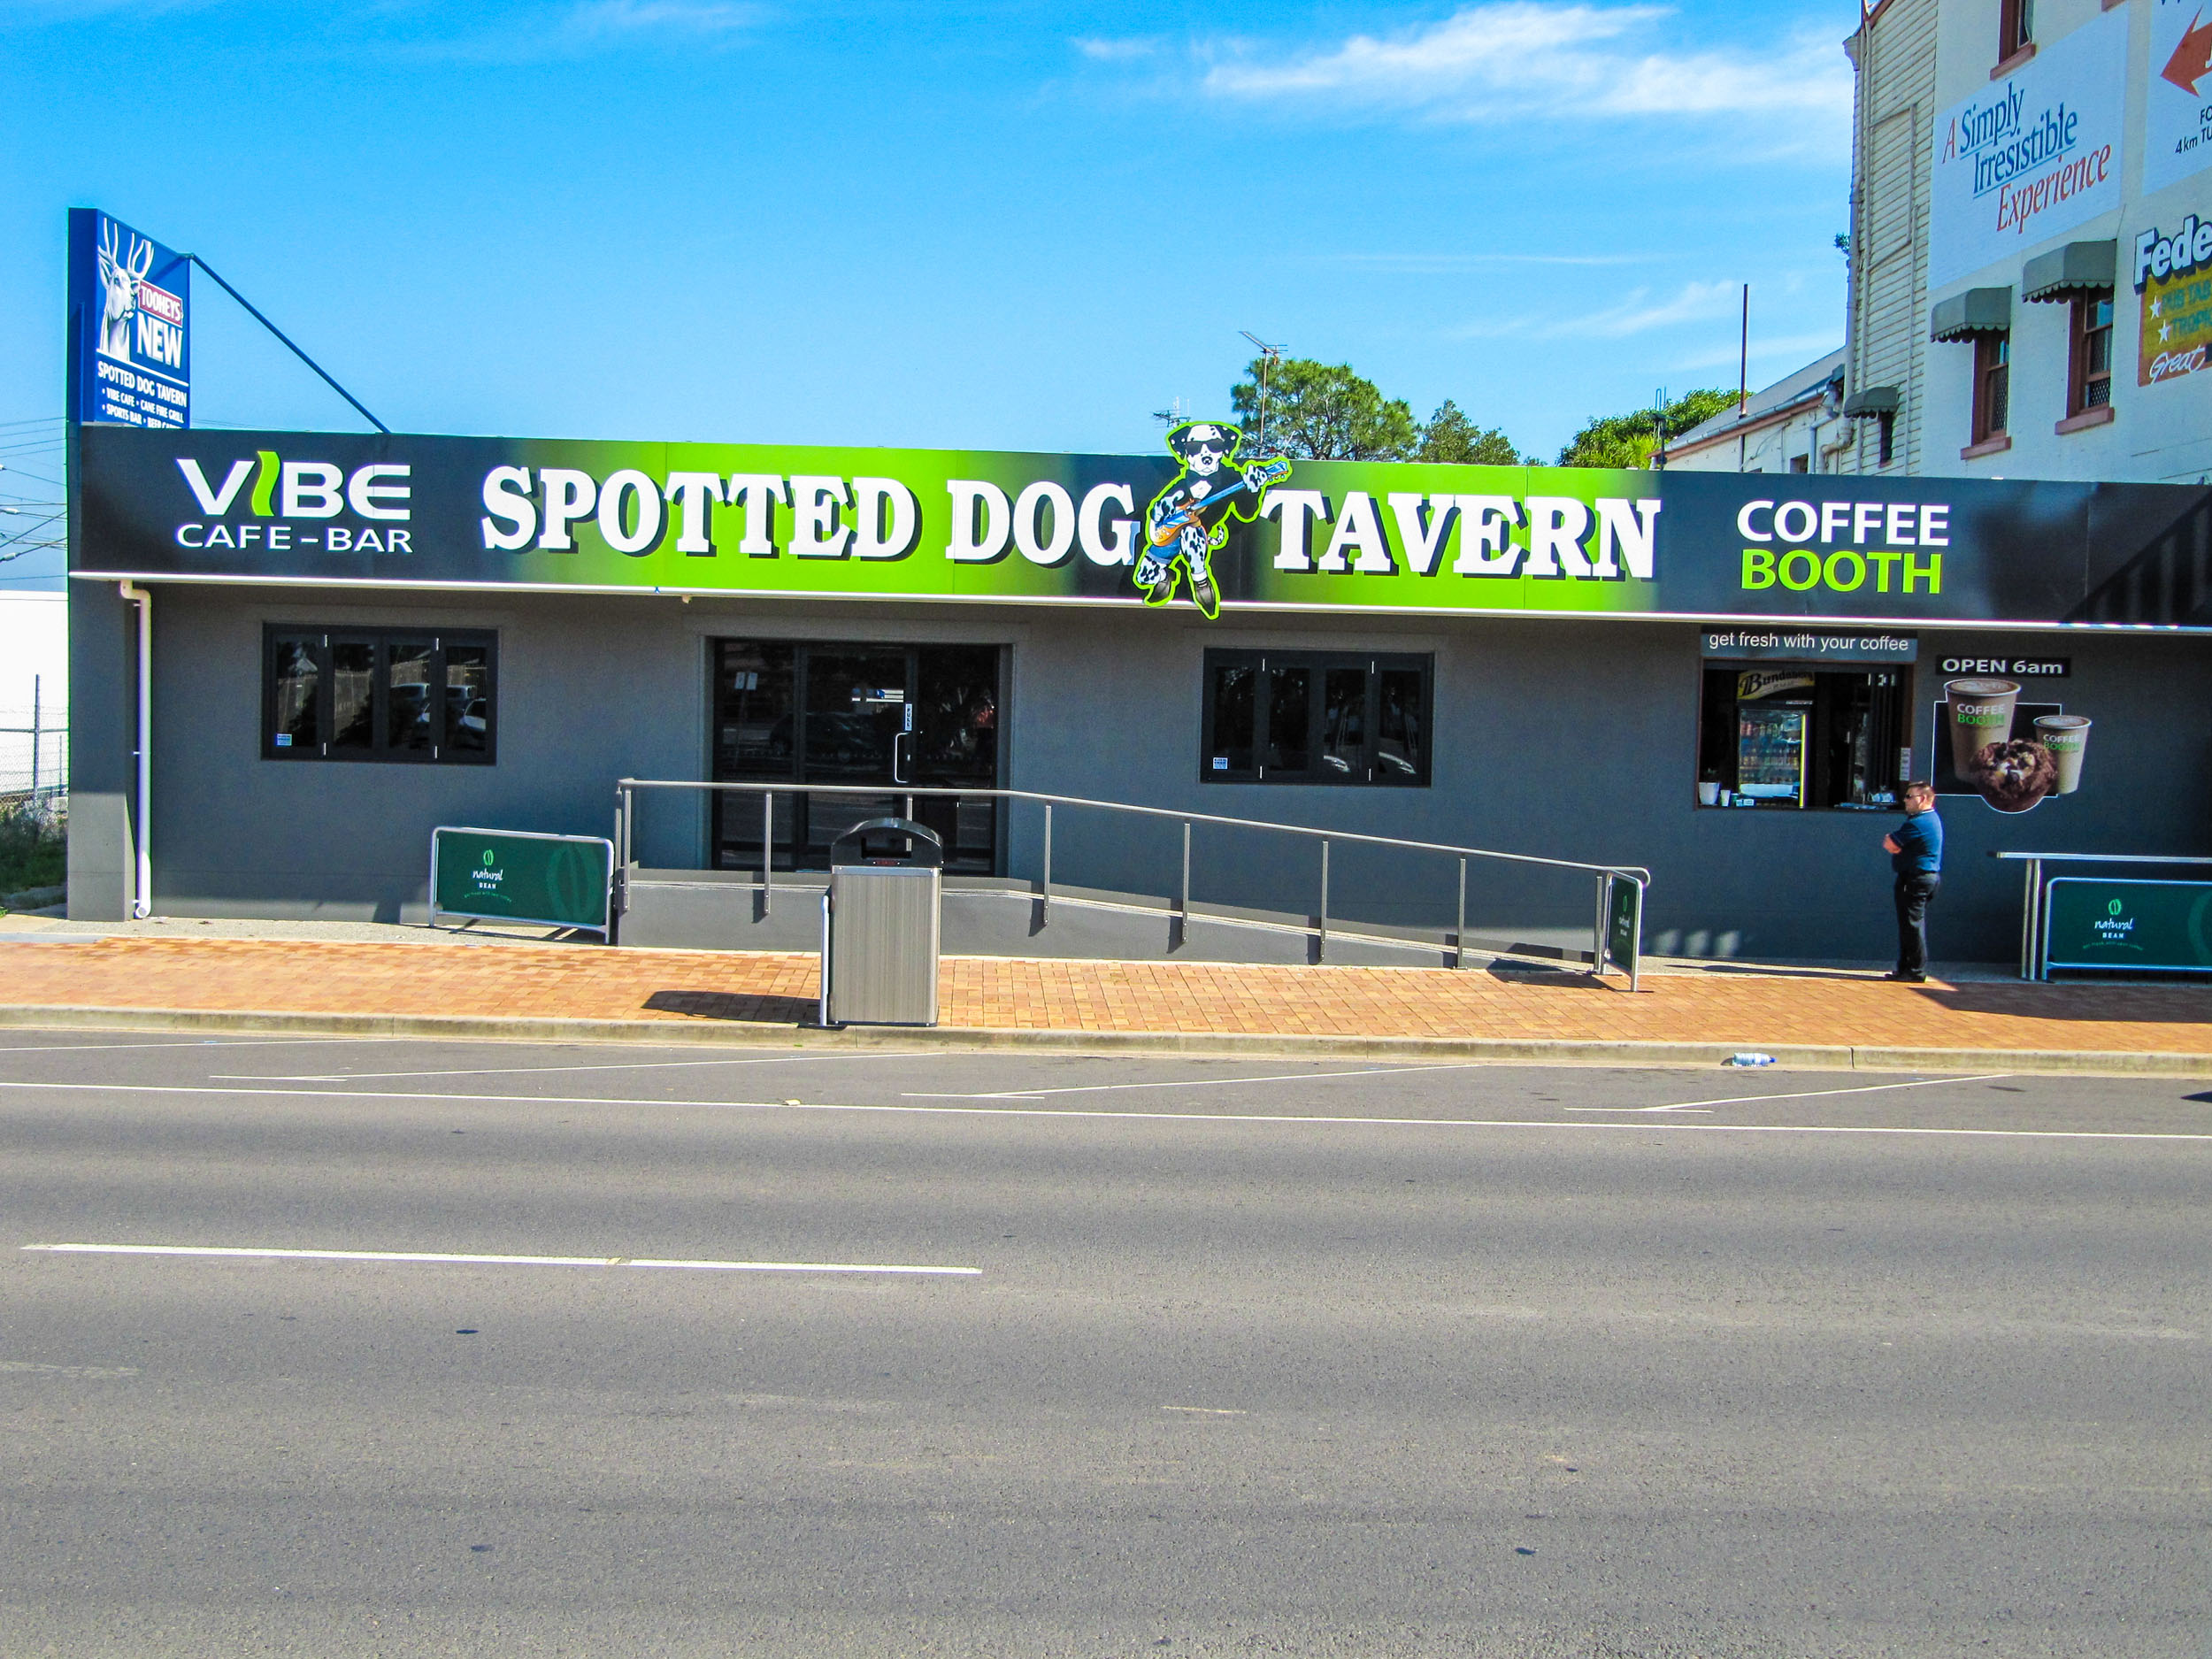 Name : Spotted Dog Tavern